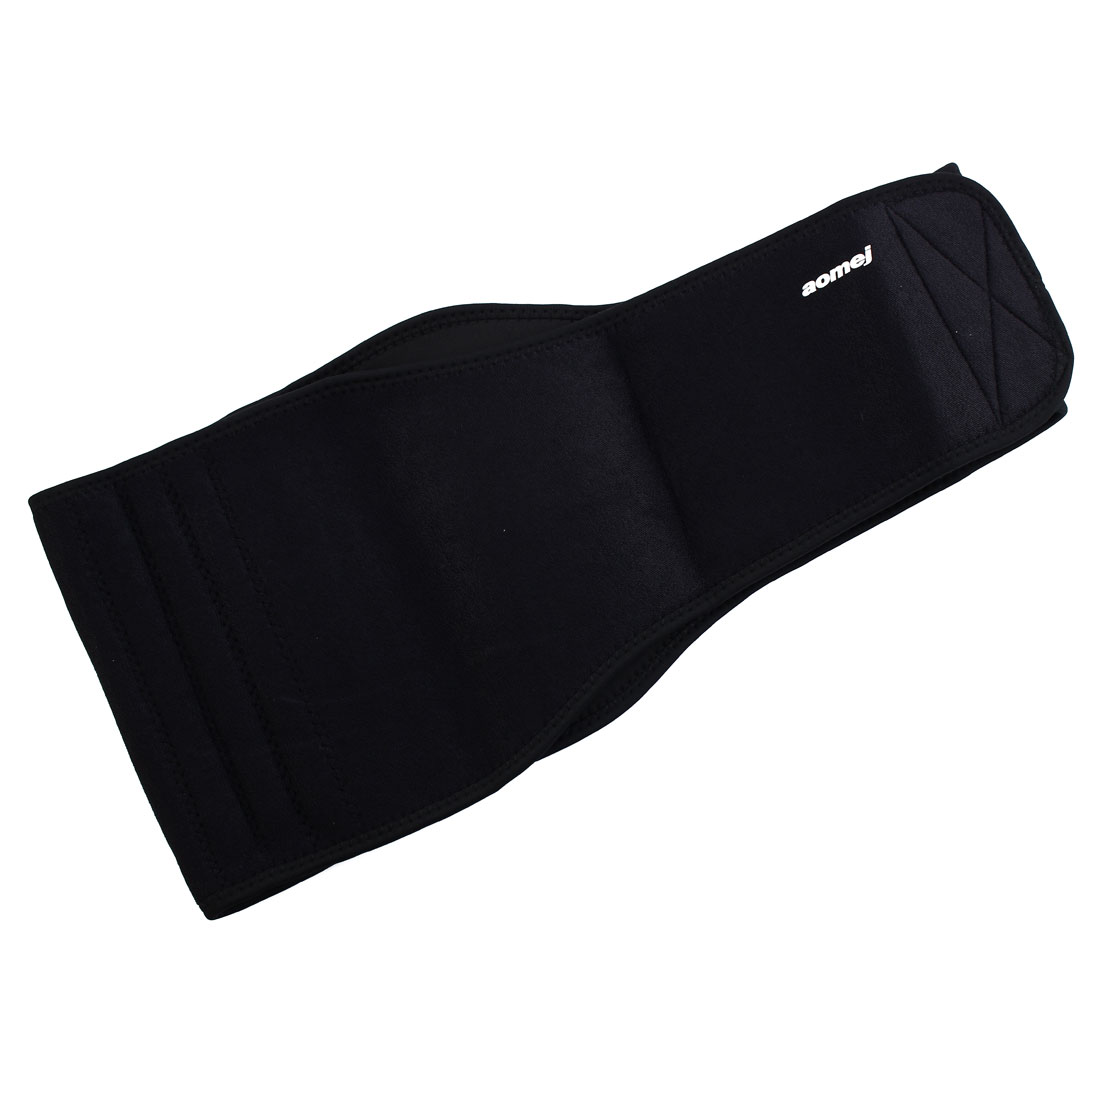 Black Neoprene Waist Support Pain Back Elastic Brace